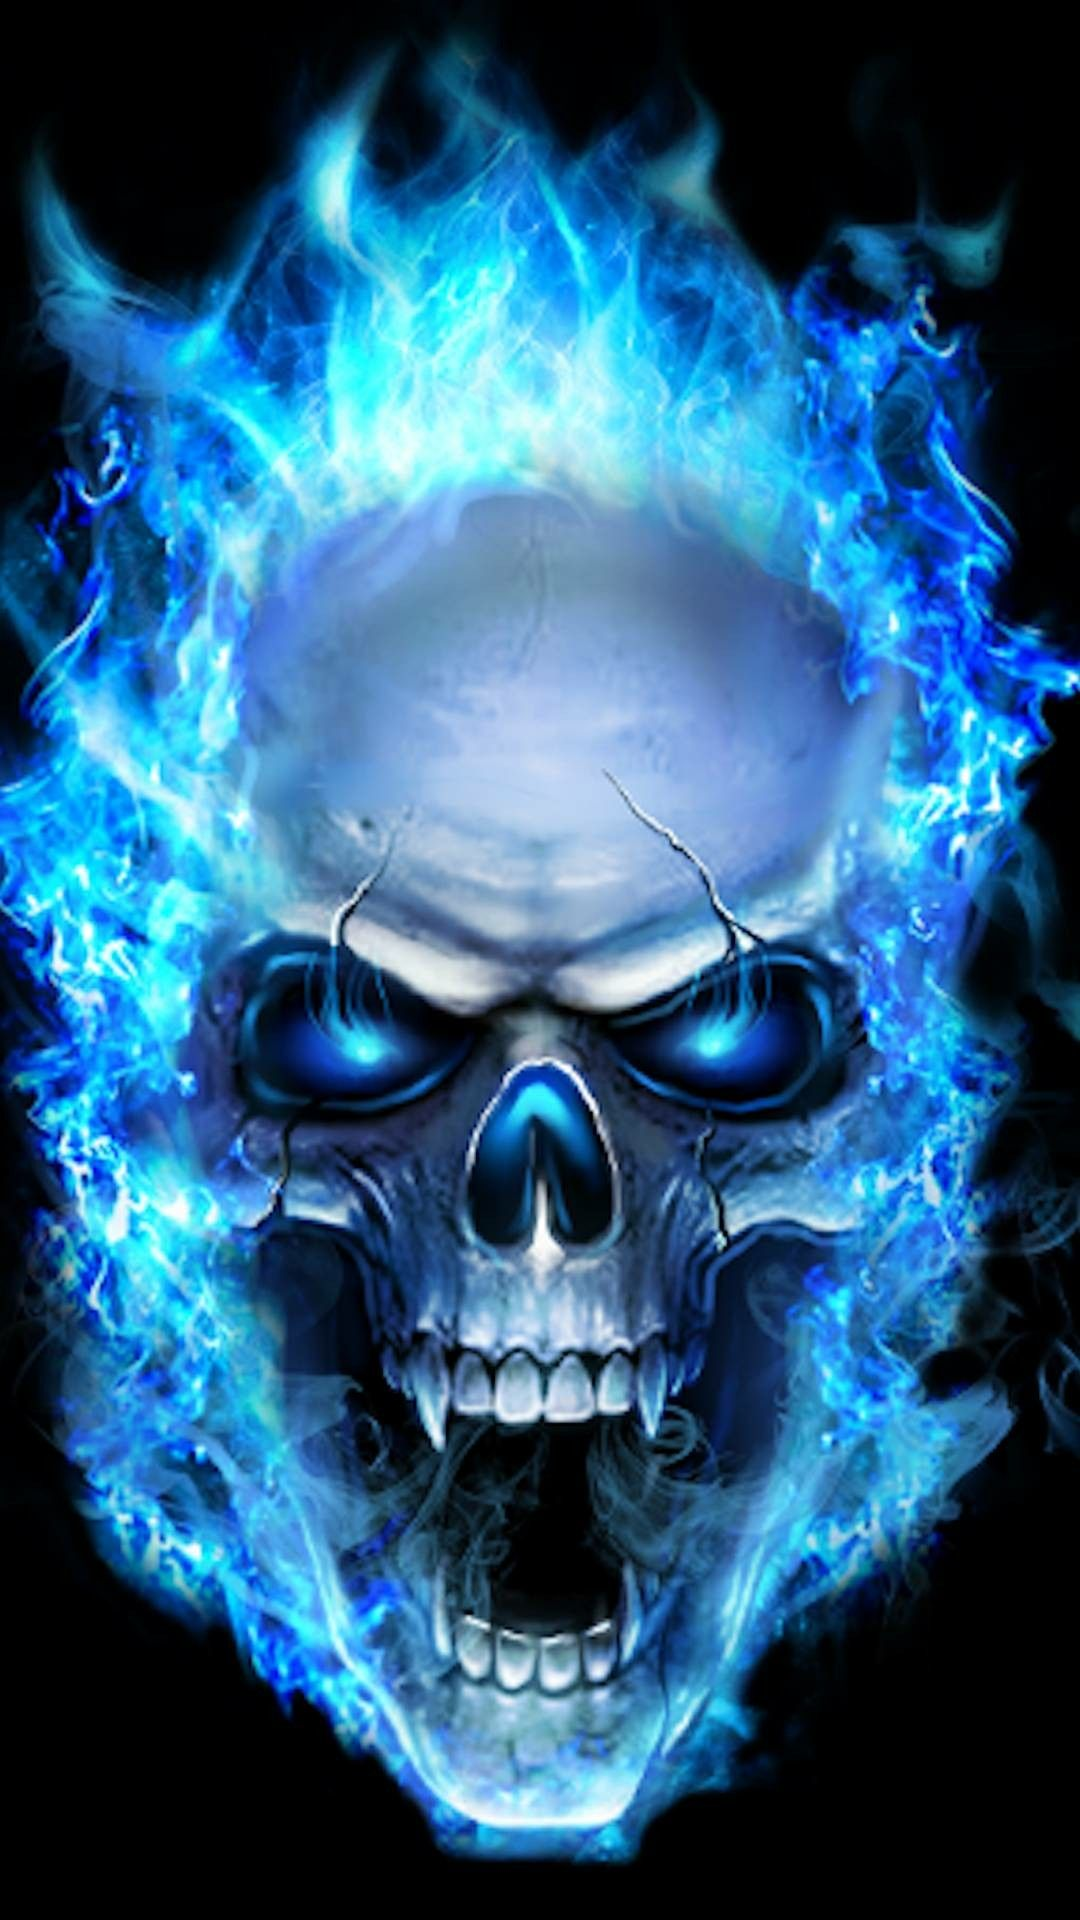 Blue Flame Skull Skull Wallpaper Skull Artwork Sugar Skull Wallpaper